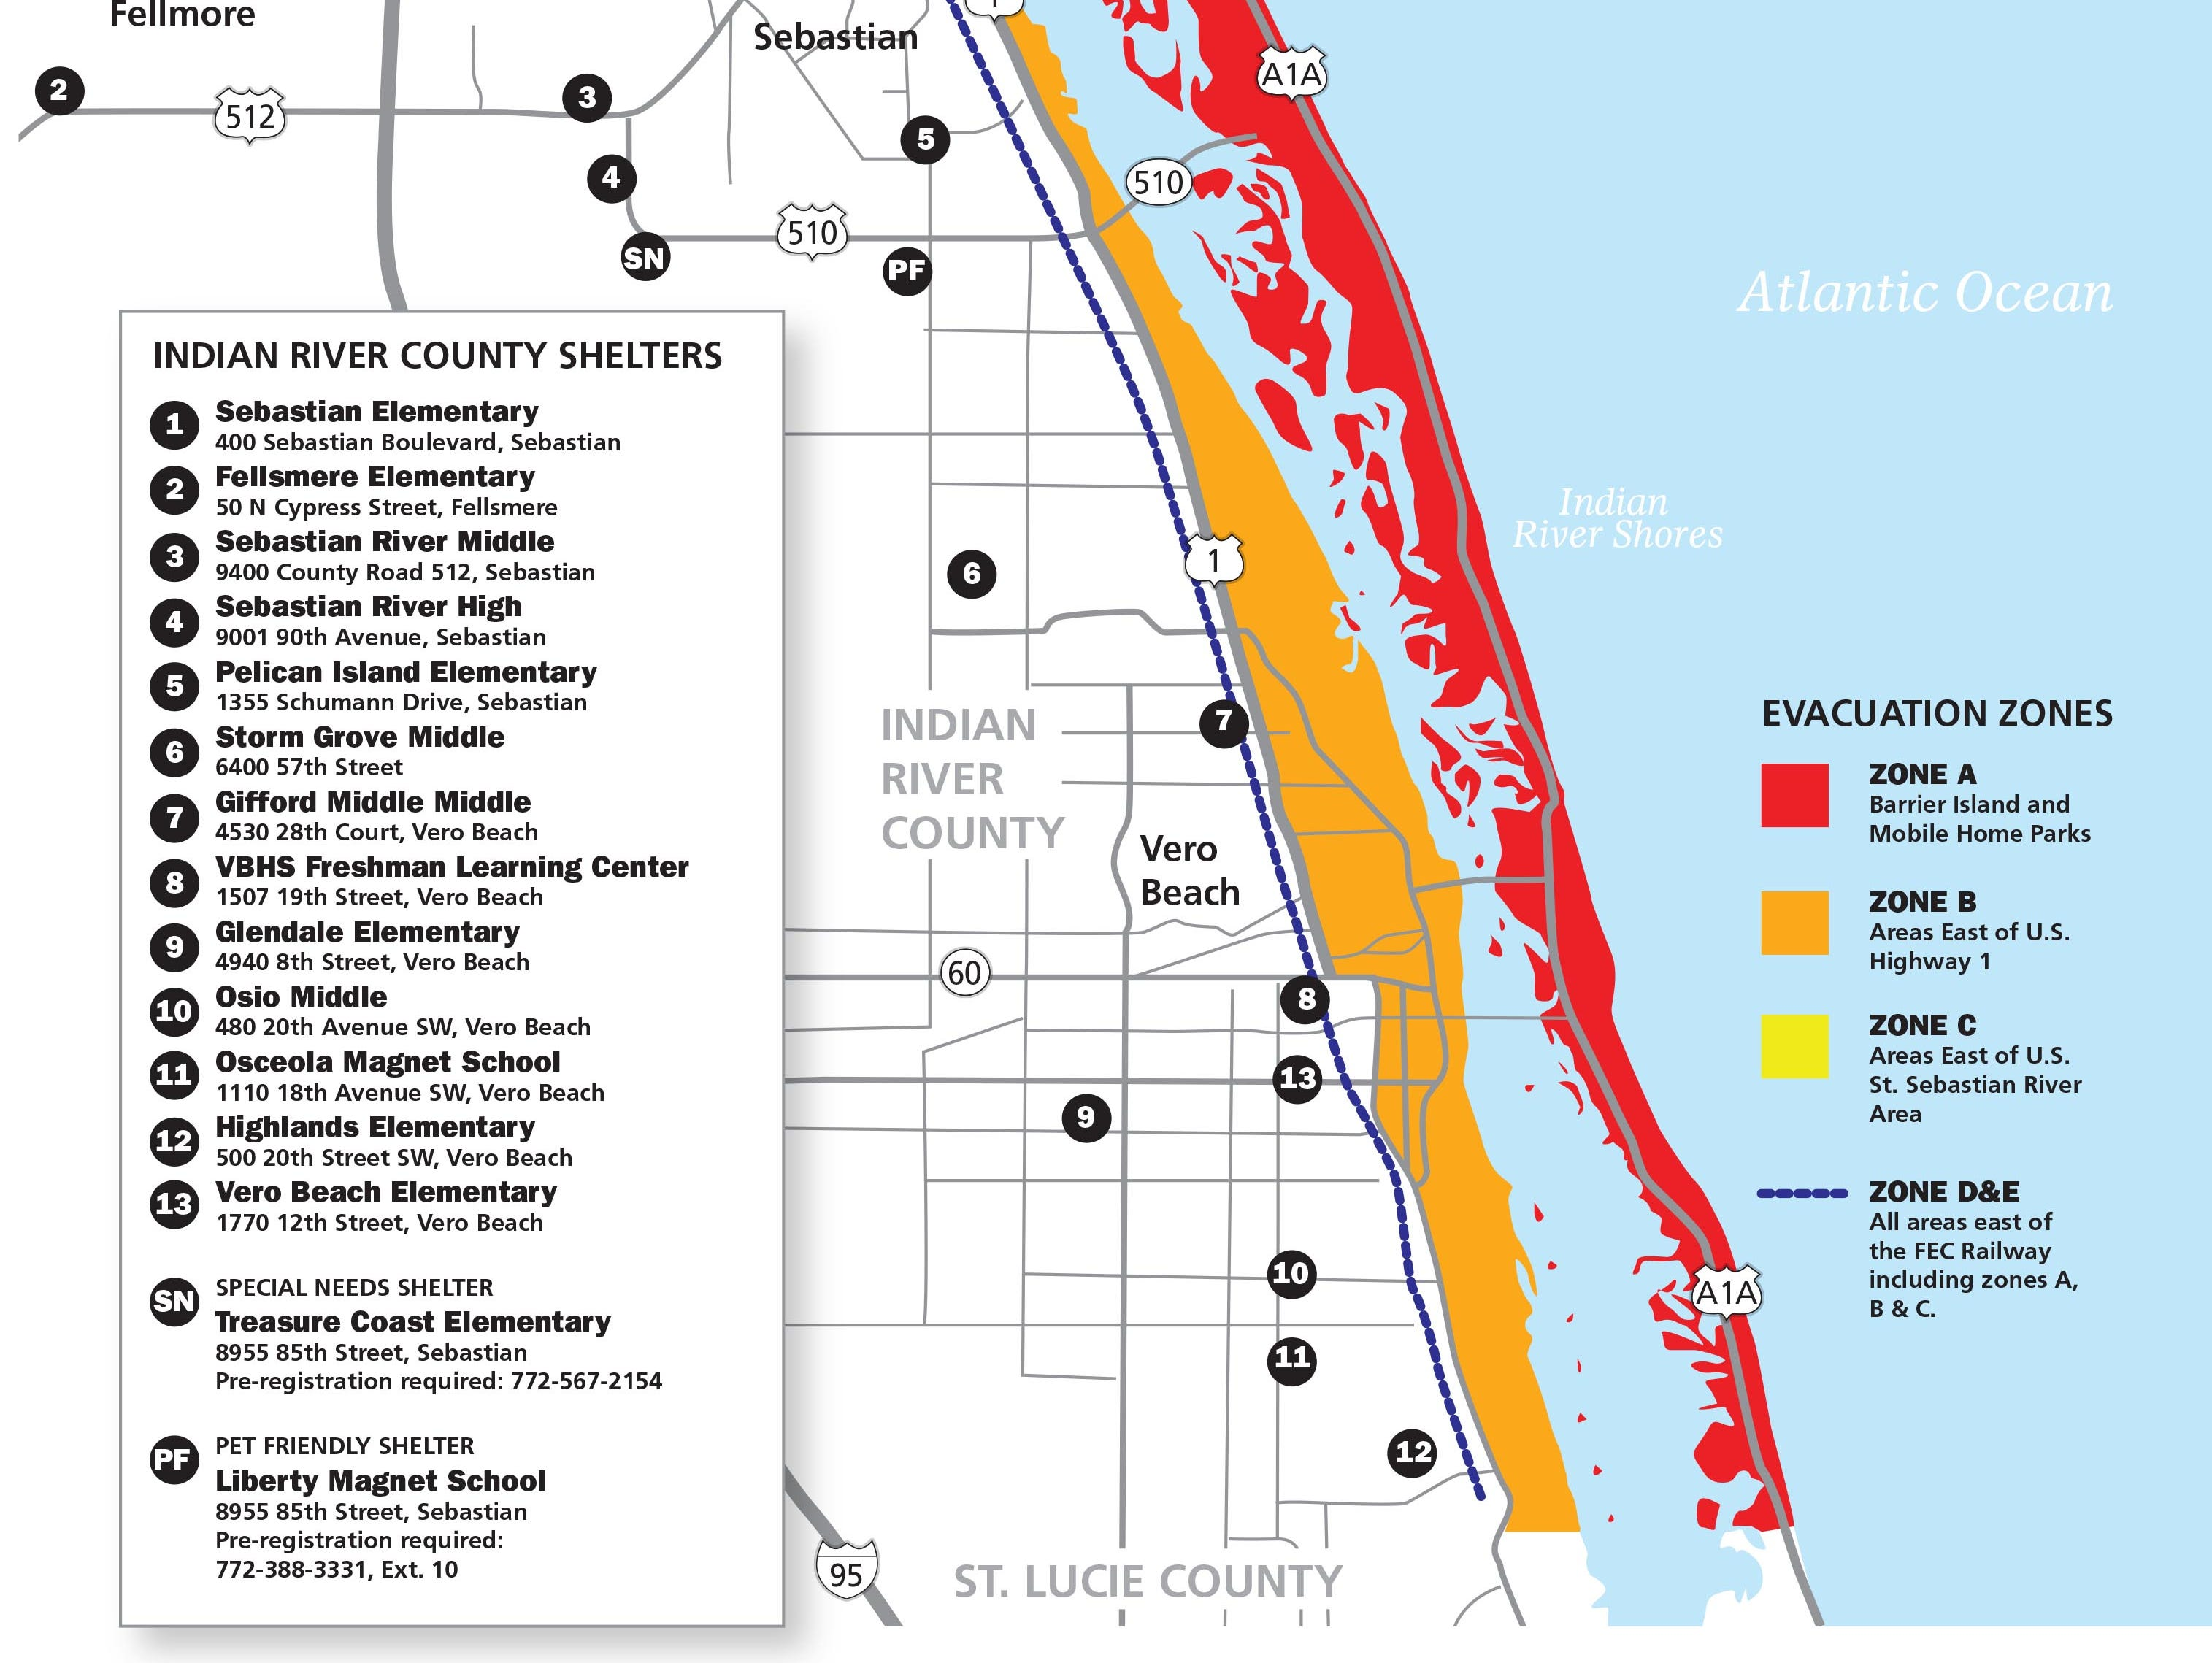 Vero Beach Hotels Map on sarasota map, florida map, leesburg area map, panama city beach on the map, st. augustine map, anna maria island map, flagler beach fl map, indian river county map, frostproof map, stuart fl on map, st. petersburg-clearwater map, pompano beach on the map, ft walton beach on map, royal palm beach commons park map, cooper city map, naples map, tampa map, lakeland map, sebastian map, united states map,